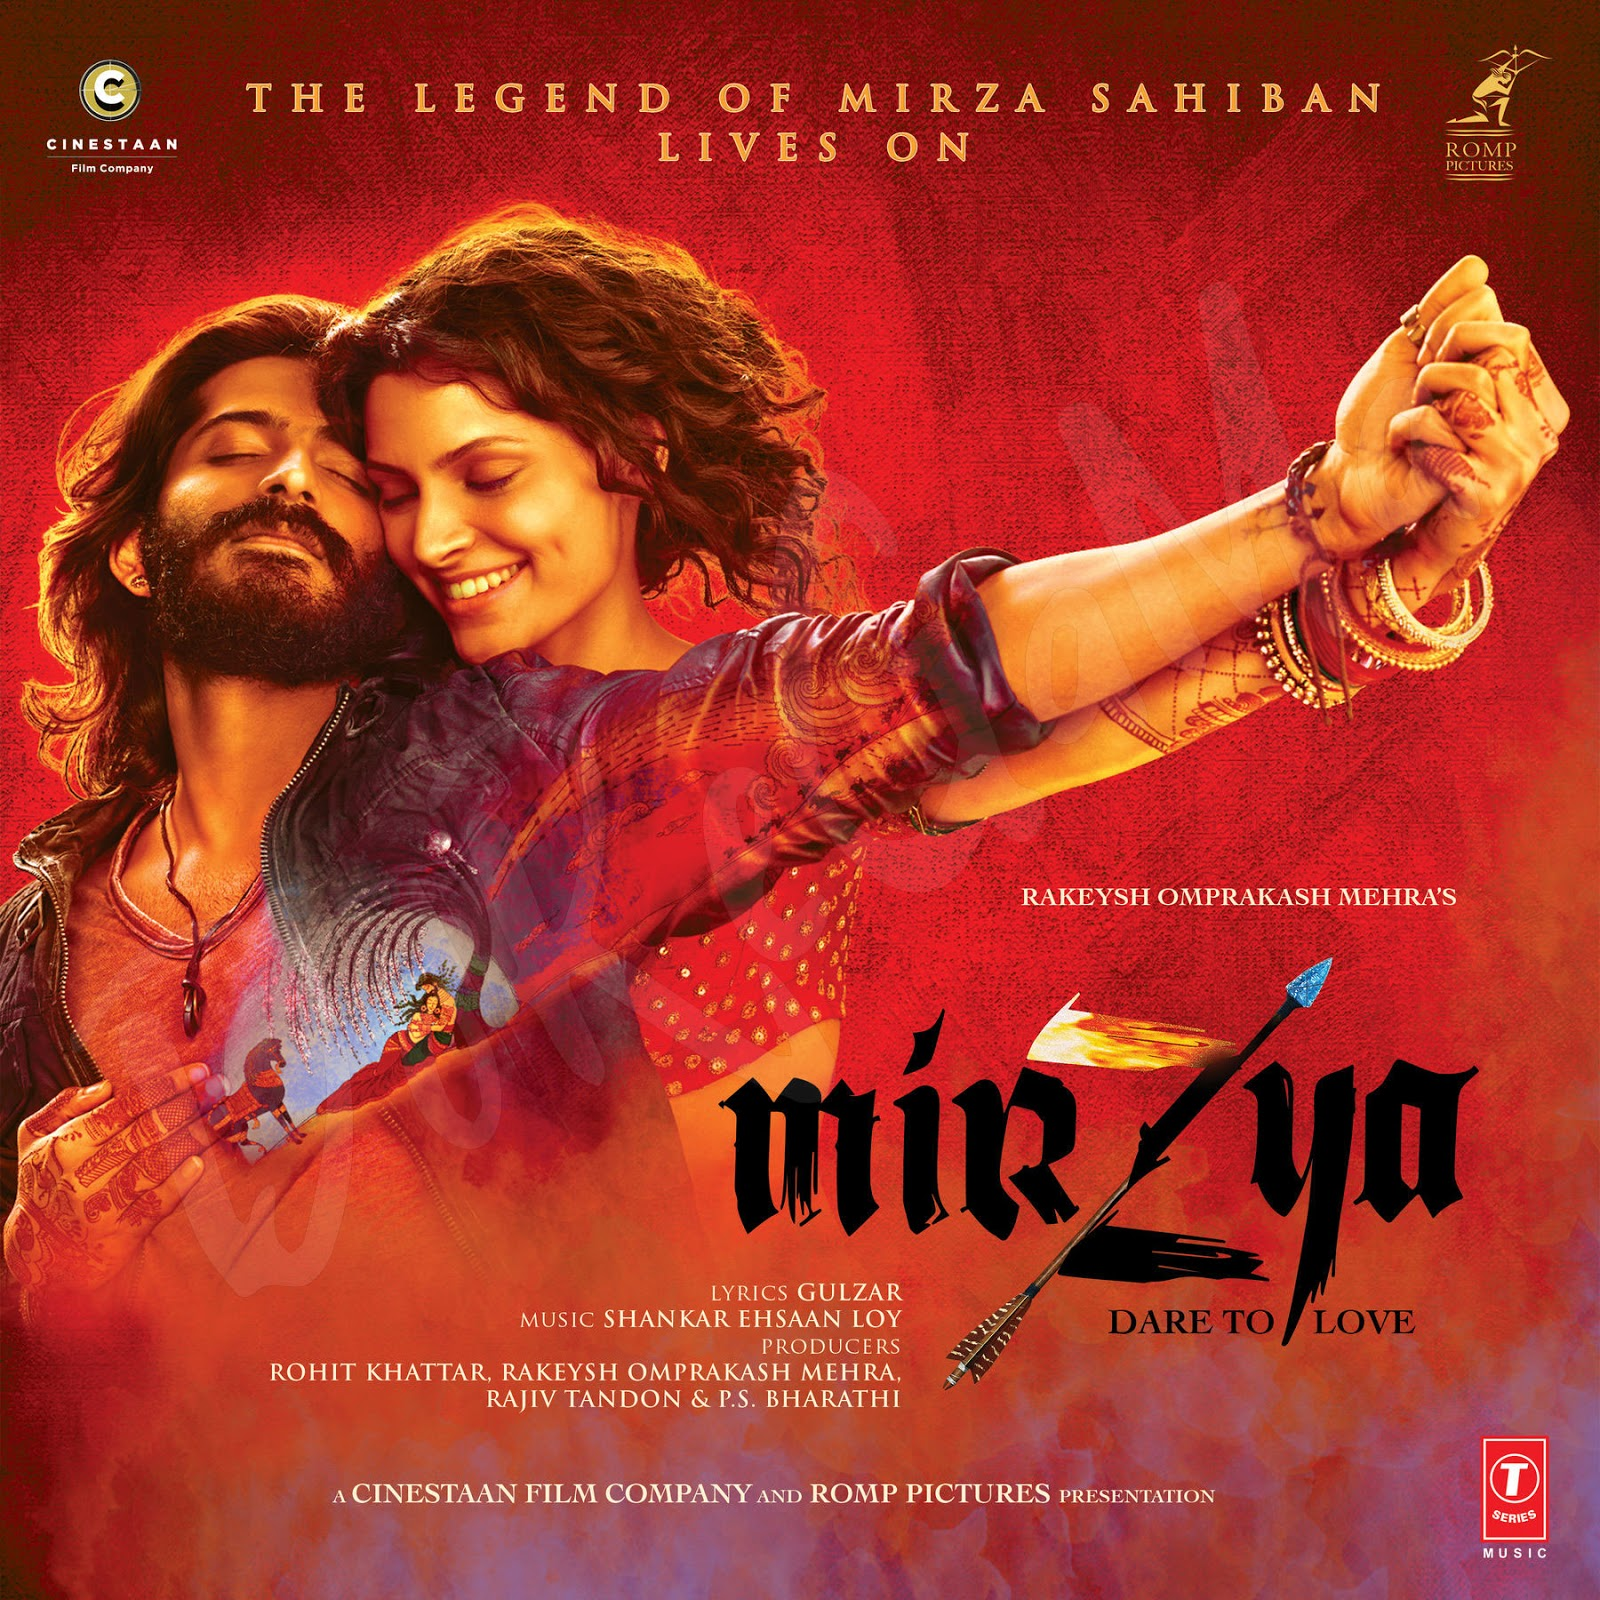 Mirzya-2016-Movie-Songs-CD-Front-Cover-Poster-wallpaper-HD